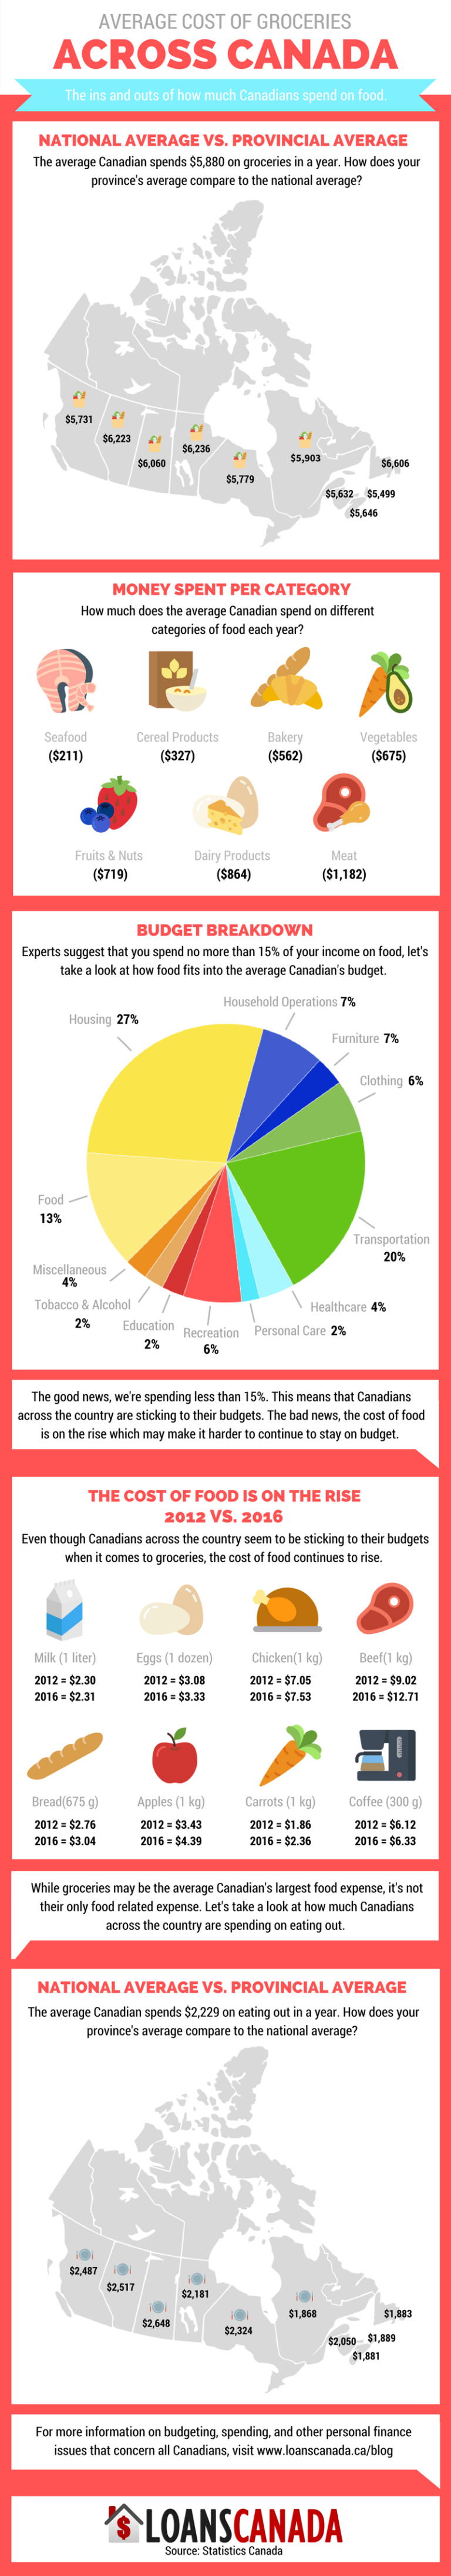 cost of groceries Canada